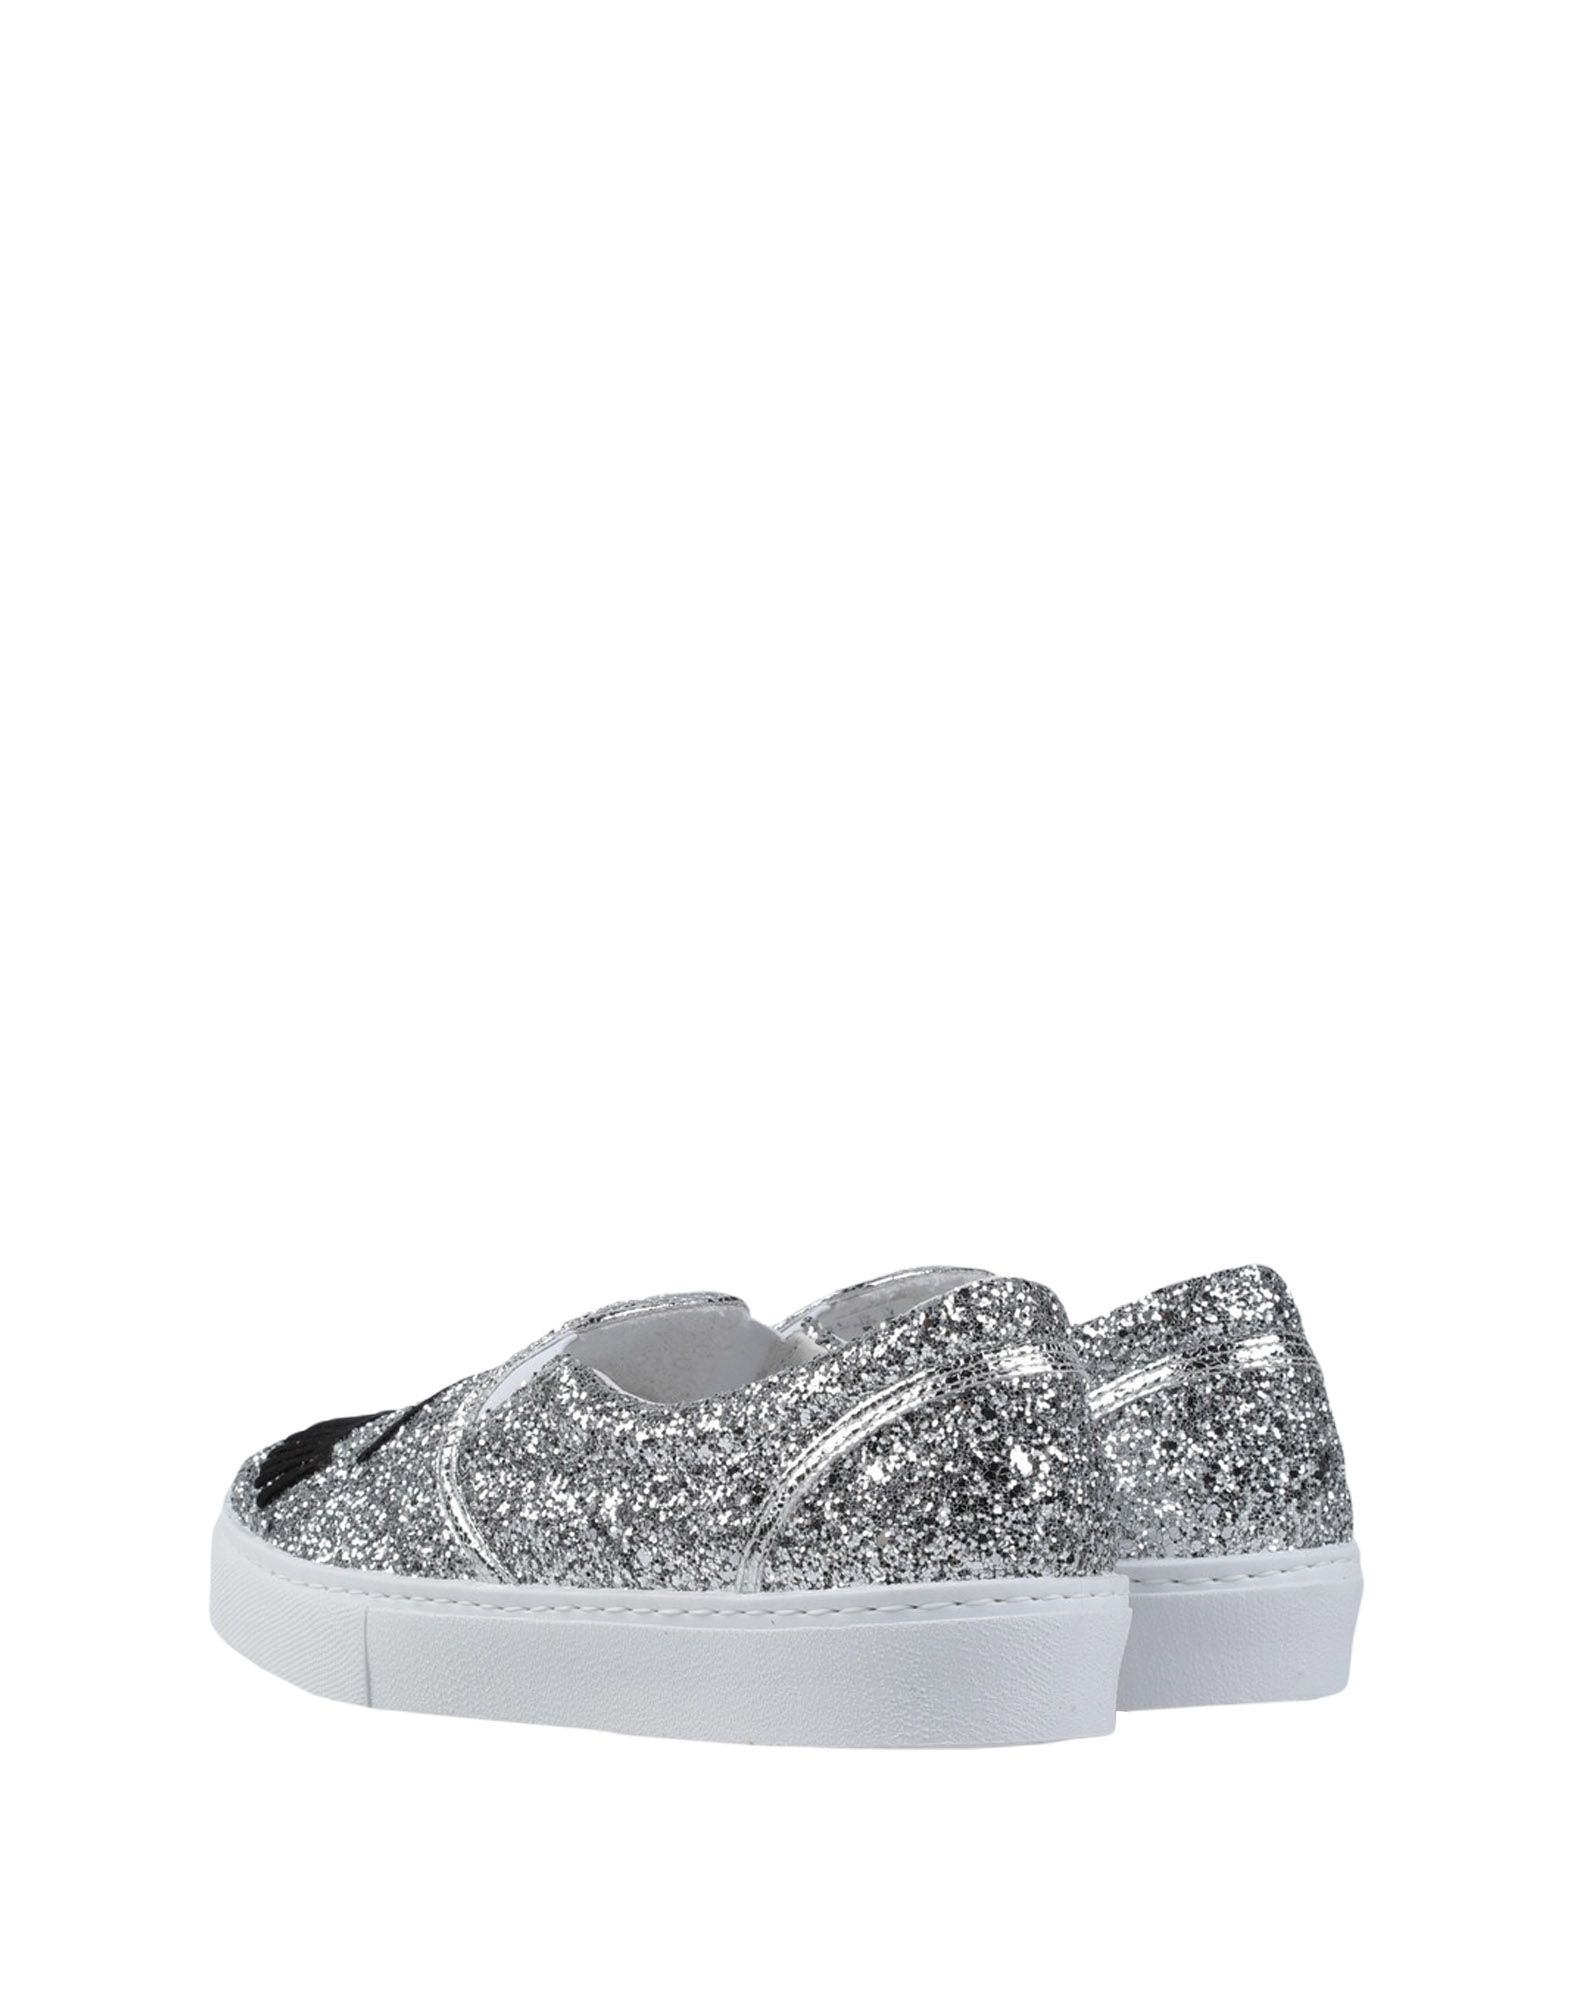 Stilvolle billige Sneakers Schuhe Chiara Ferragni Sneakers billige Damen  11550658PS 8dd425